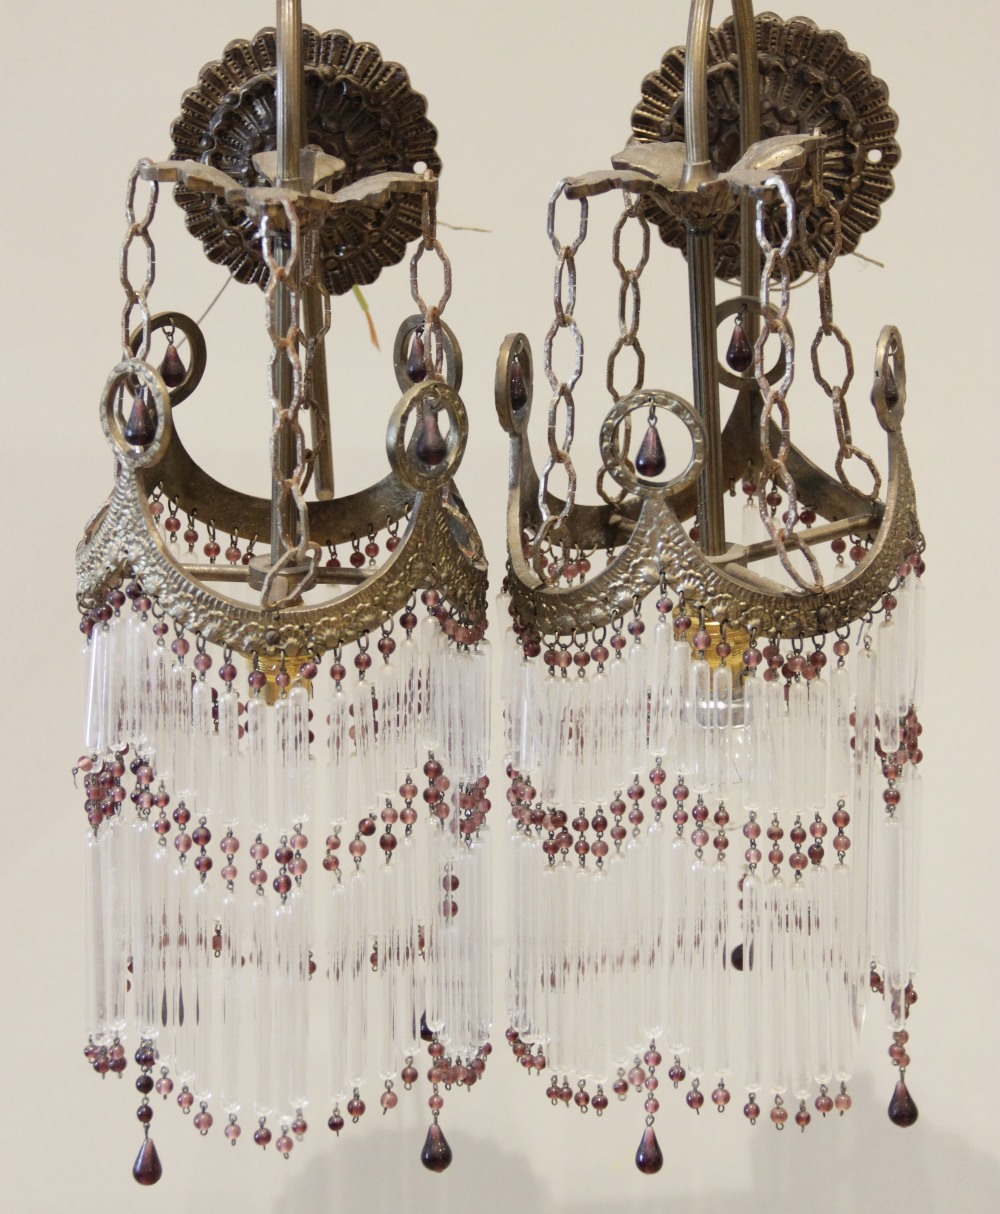 A pair of French gilt metal wall light fittings, early 20th century, each with a cast circular